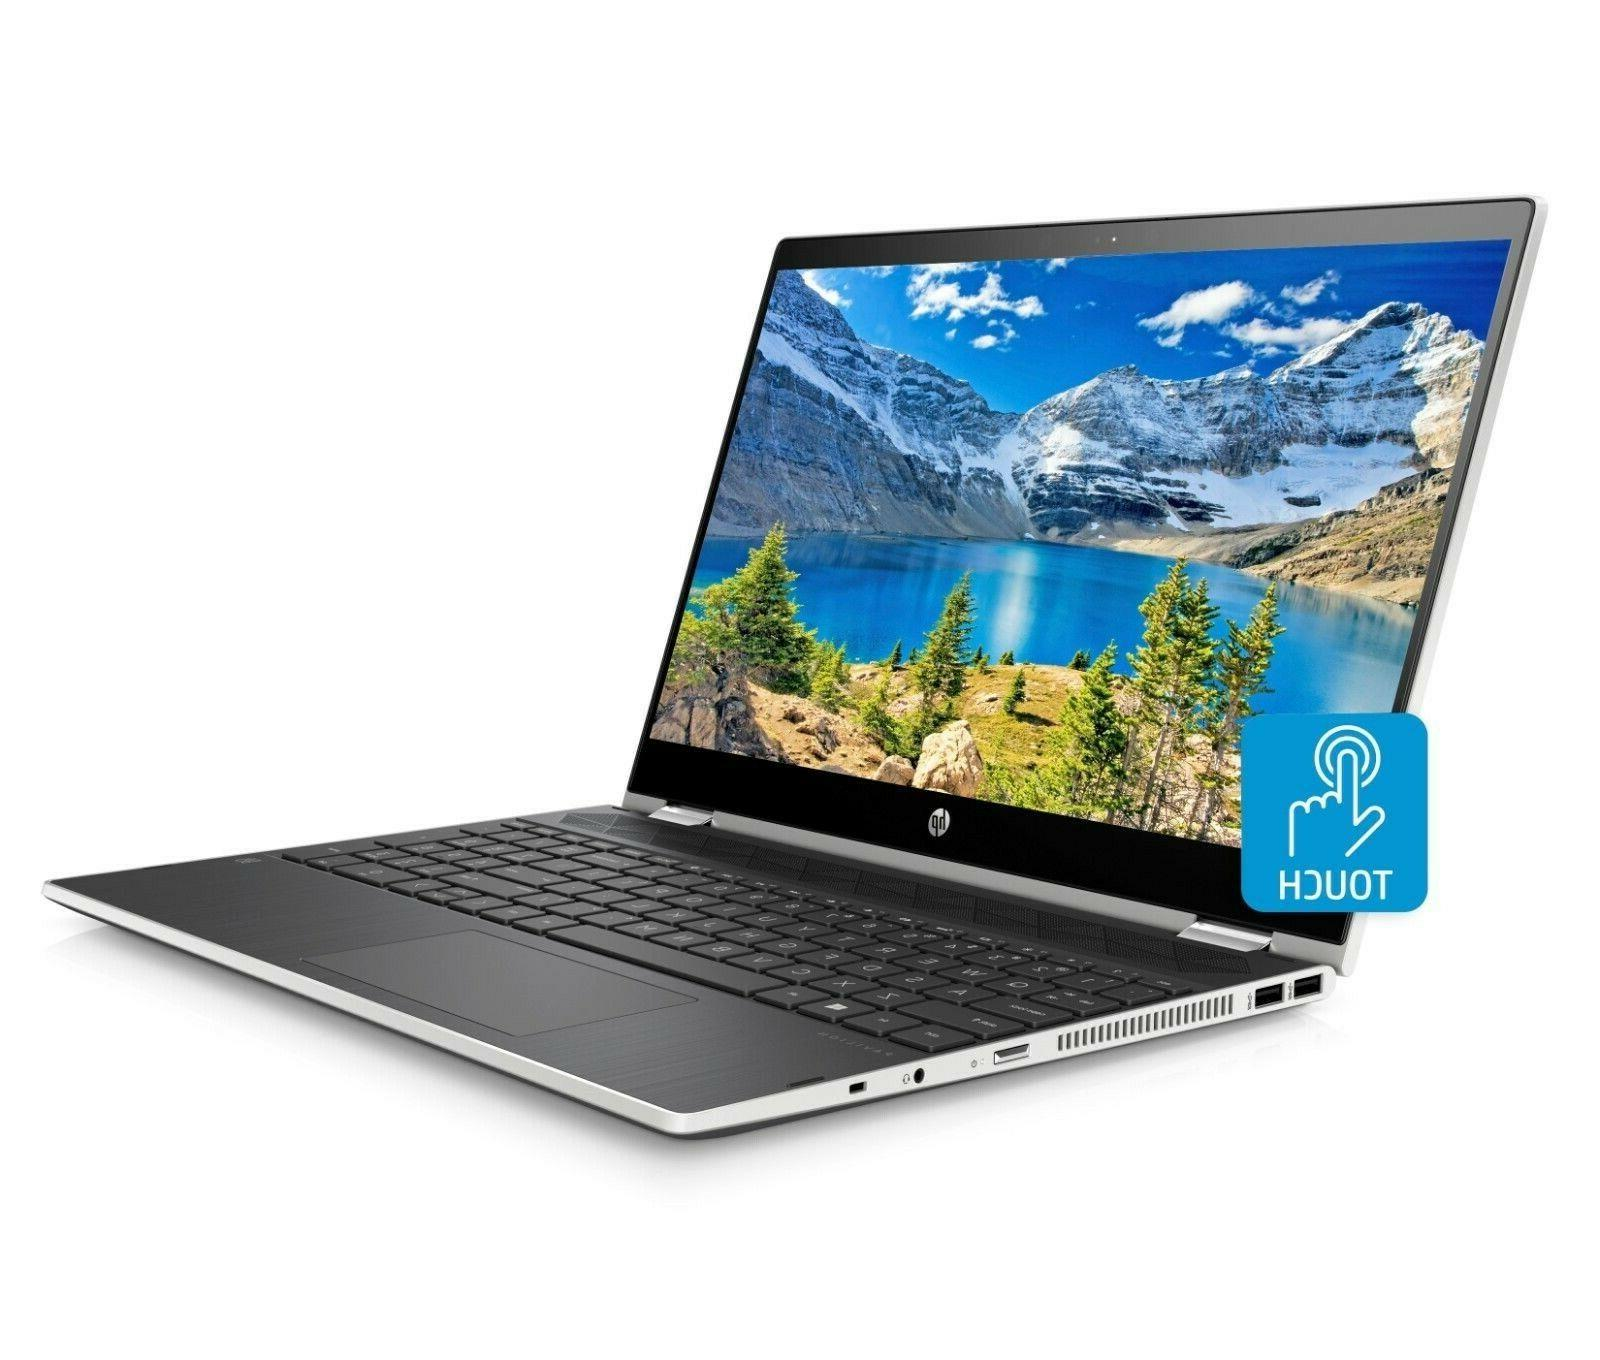 HP X360 Touch i3-8130U 1TB HDD 16GB 4GB 10 Pen